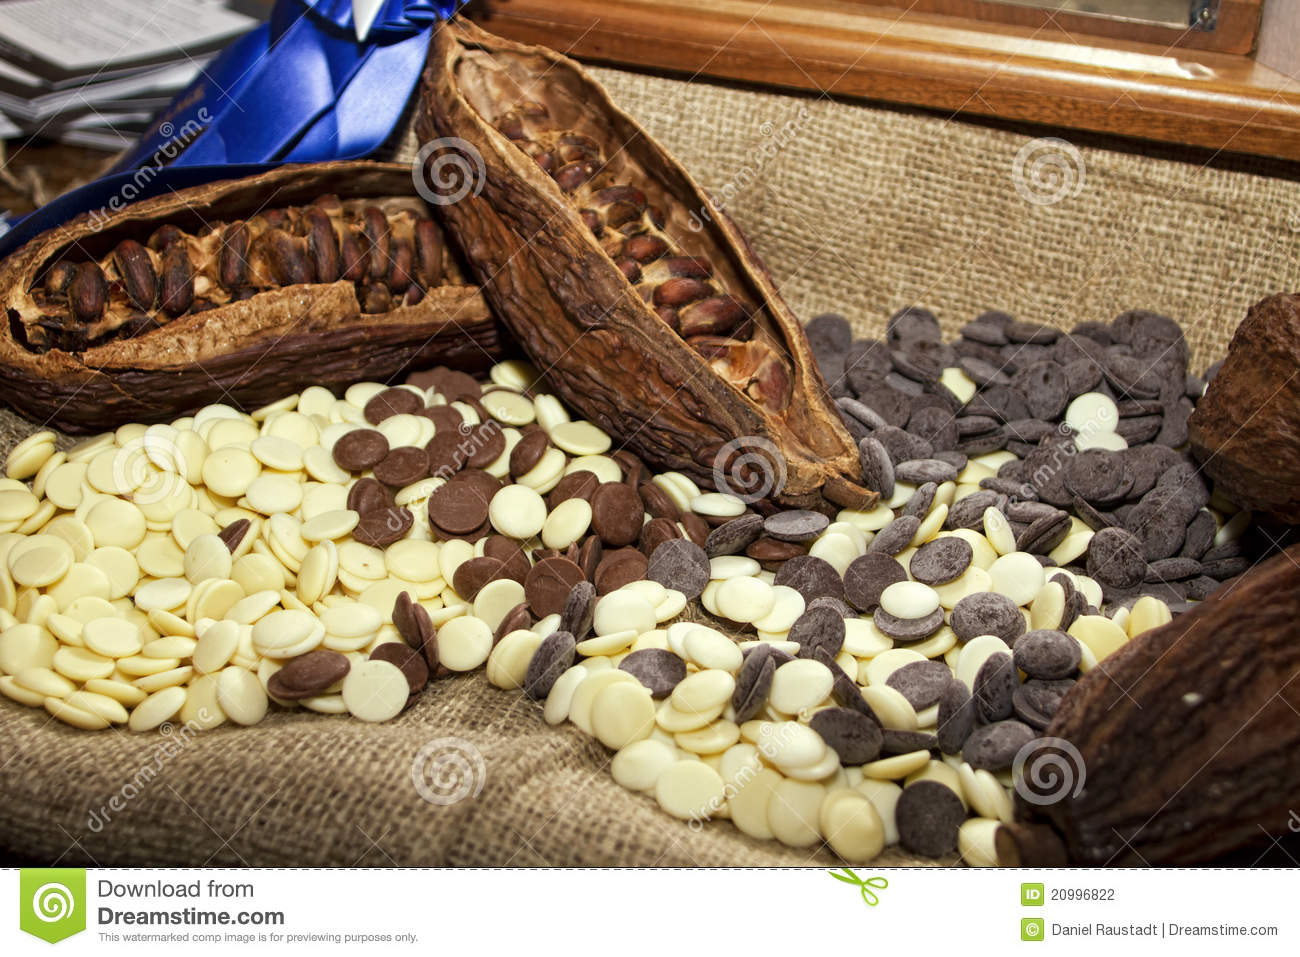 healthy food diagram 1995 ford taurus wiring cocoa beans with white and dark chocolate stock photography - image: 20996822